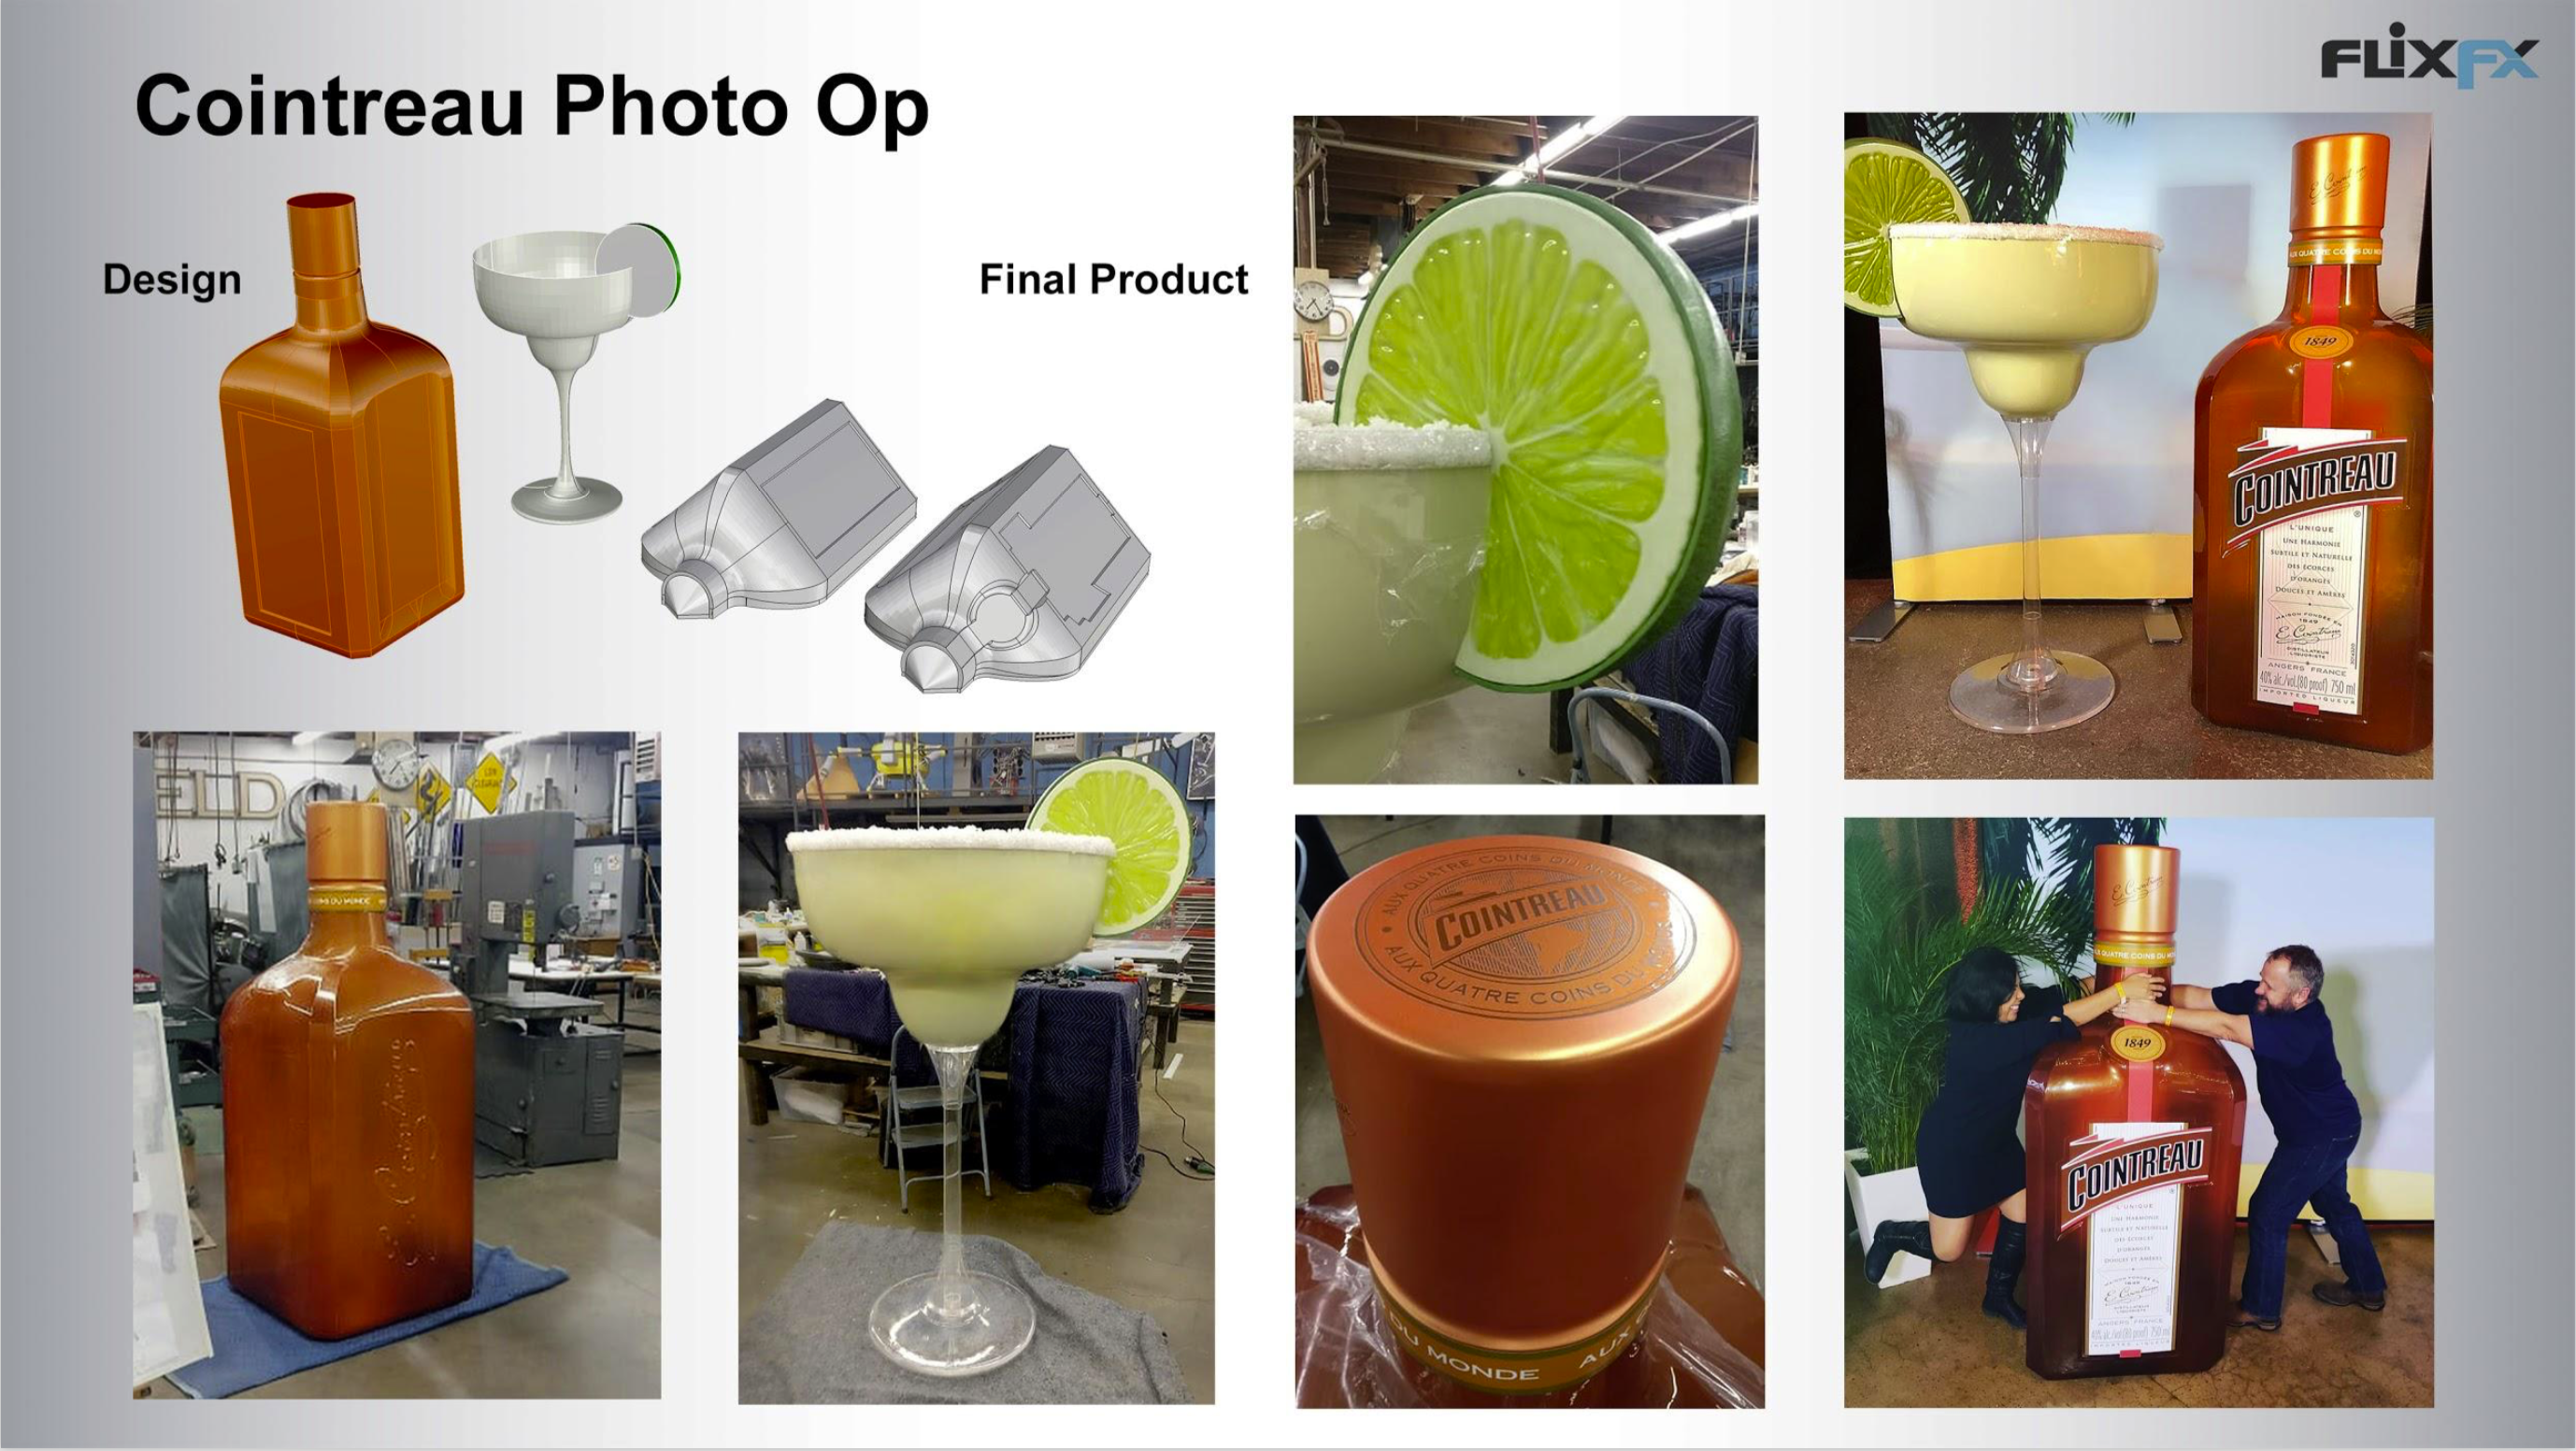 Cointreau: 3D Design, CNC Milling, Vacuforming, Acrylic Fabrication, Vac-printing, Flat Bed Printing, Scenic Paint & Carpentry.